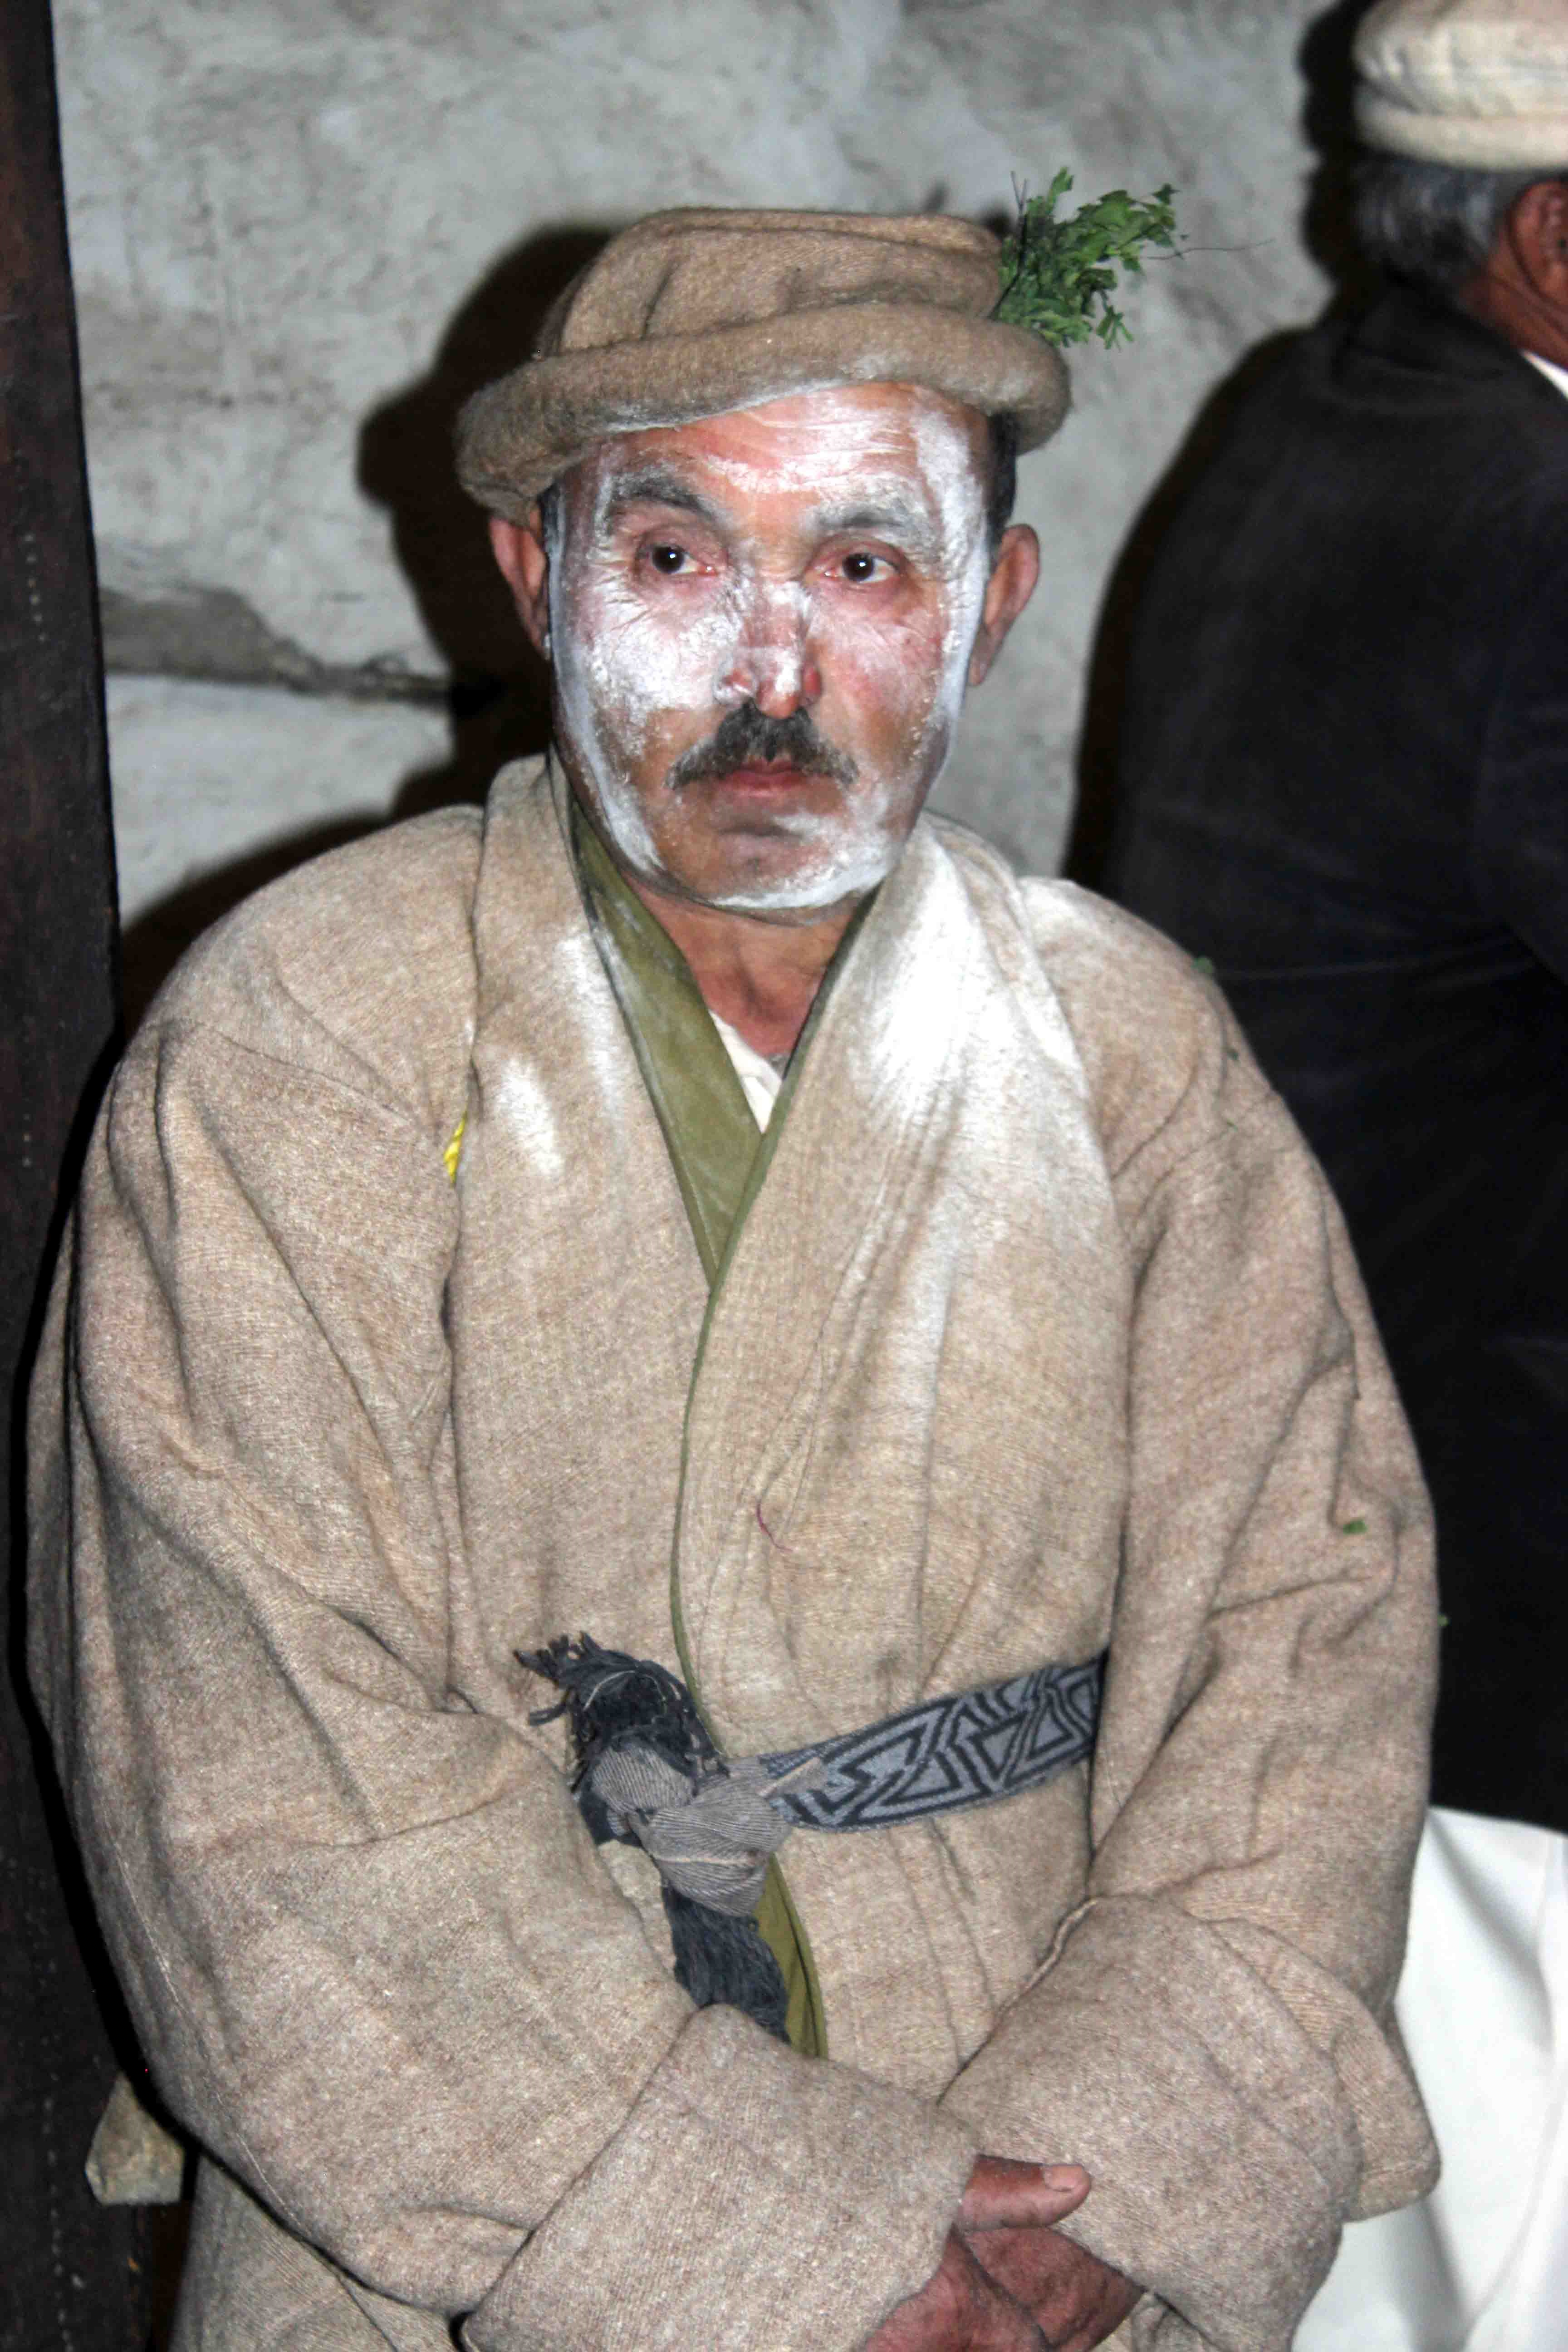 A local man dressed as a character during the festival